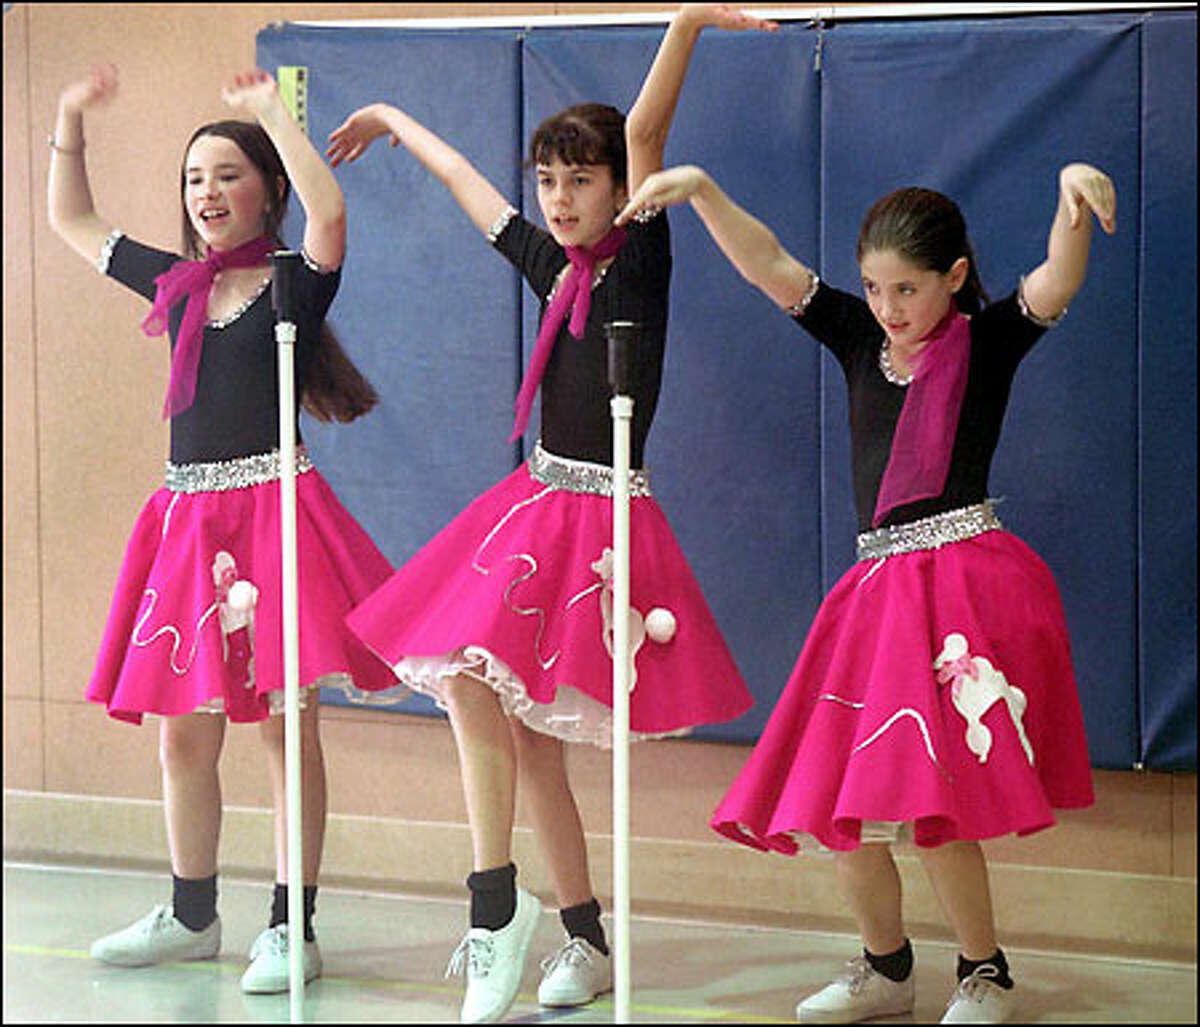 Showing off their moves during a Hilighters song-and-dance number are, from left, Claire Carey, 10, Marina Ponomareva, 11, and Lindsay Sandler, 10.